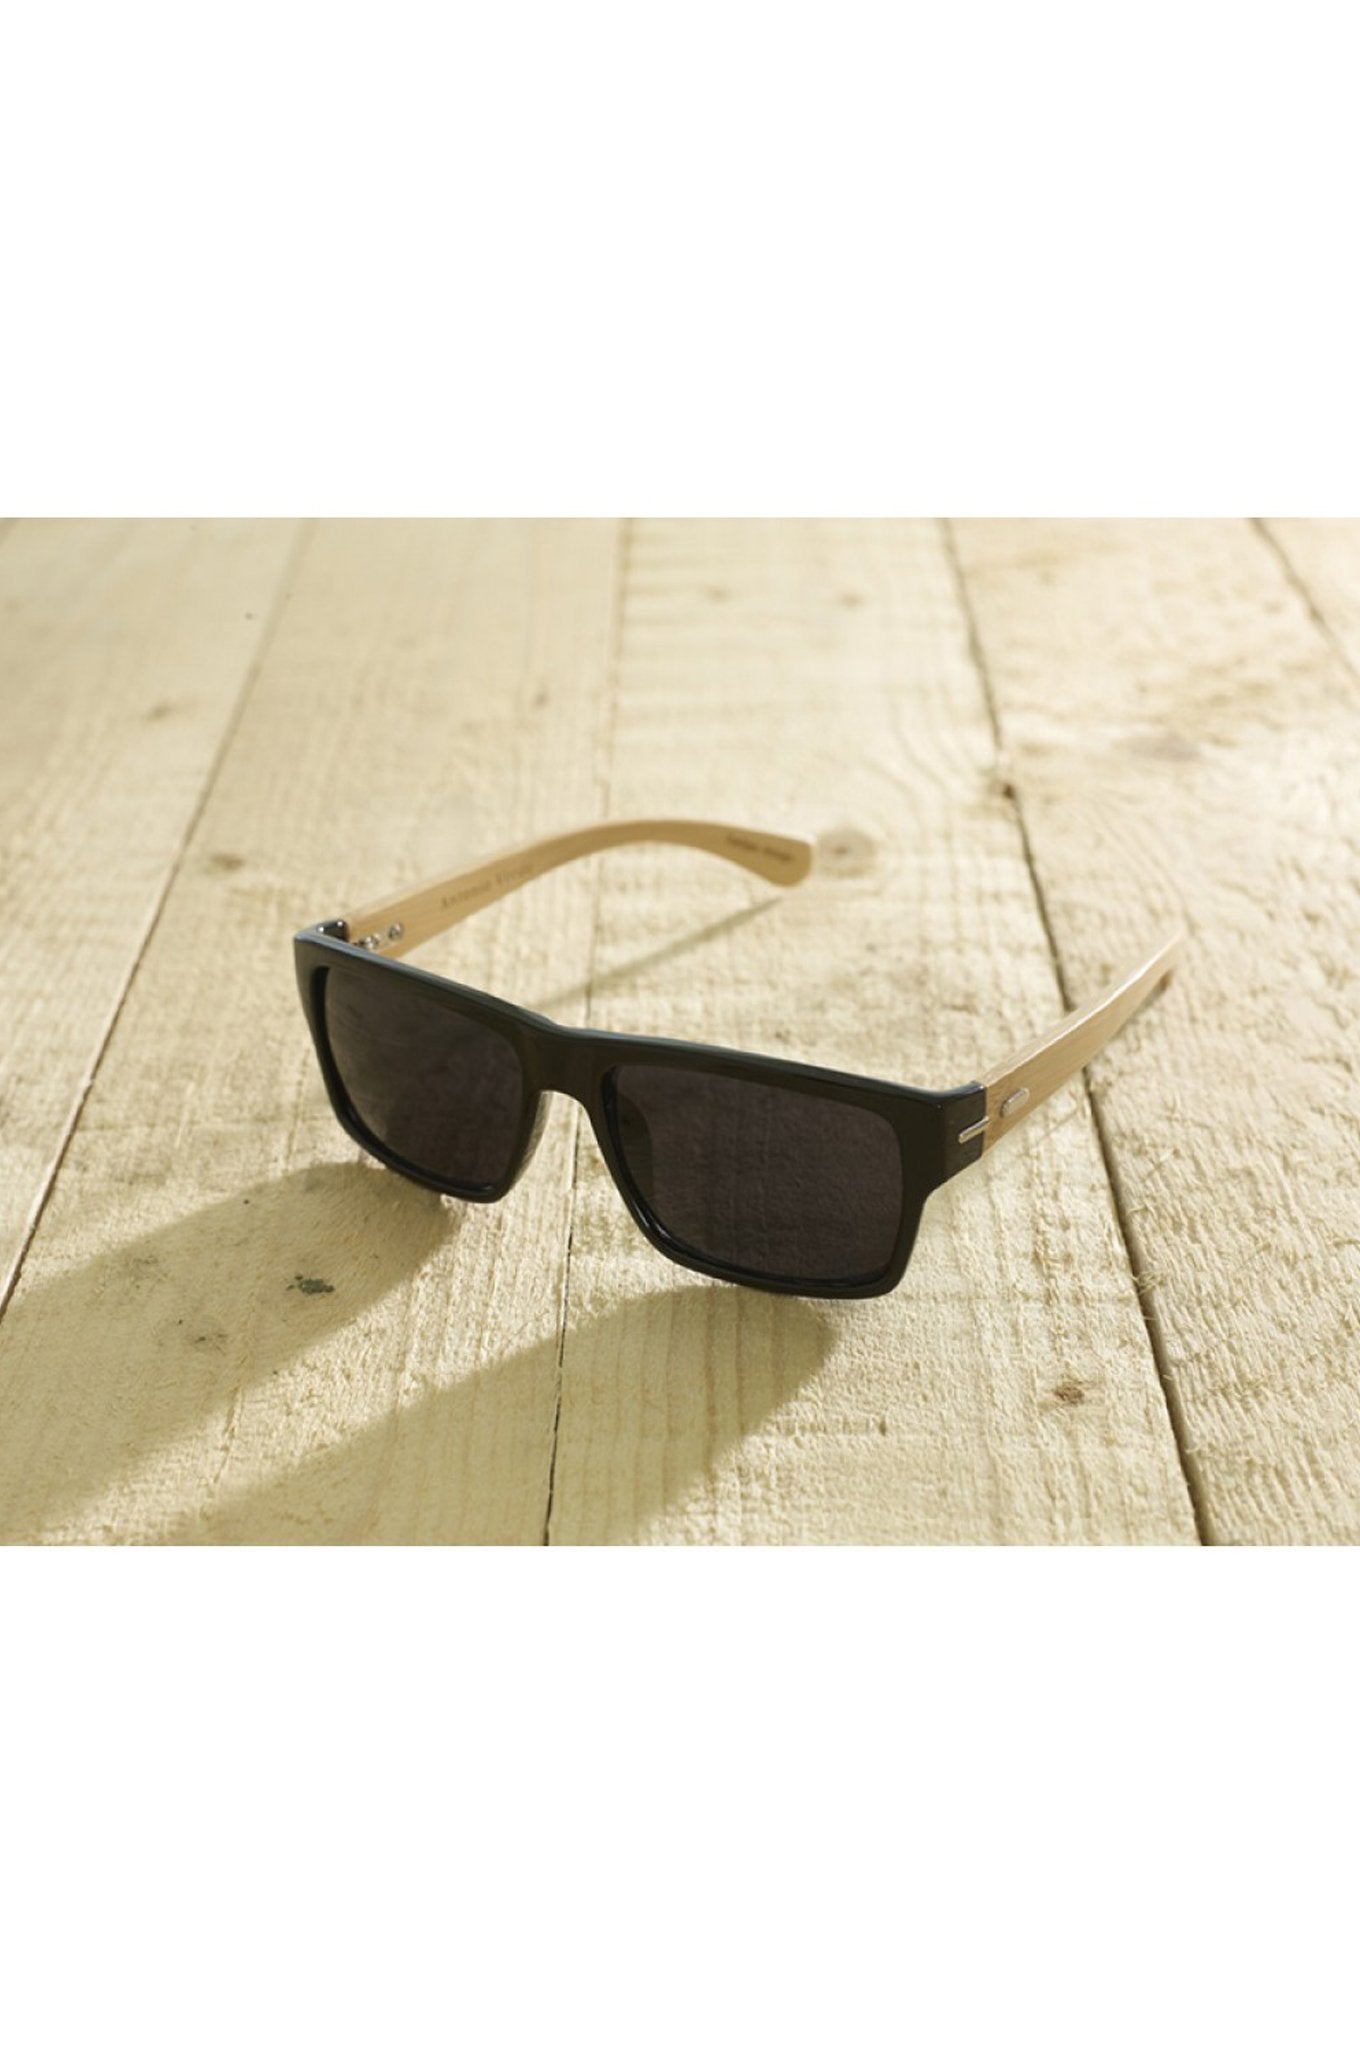 Sunglasses - Roma Shiny Black